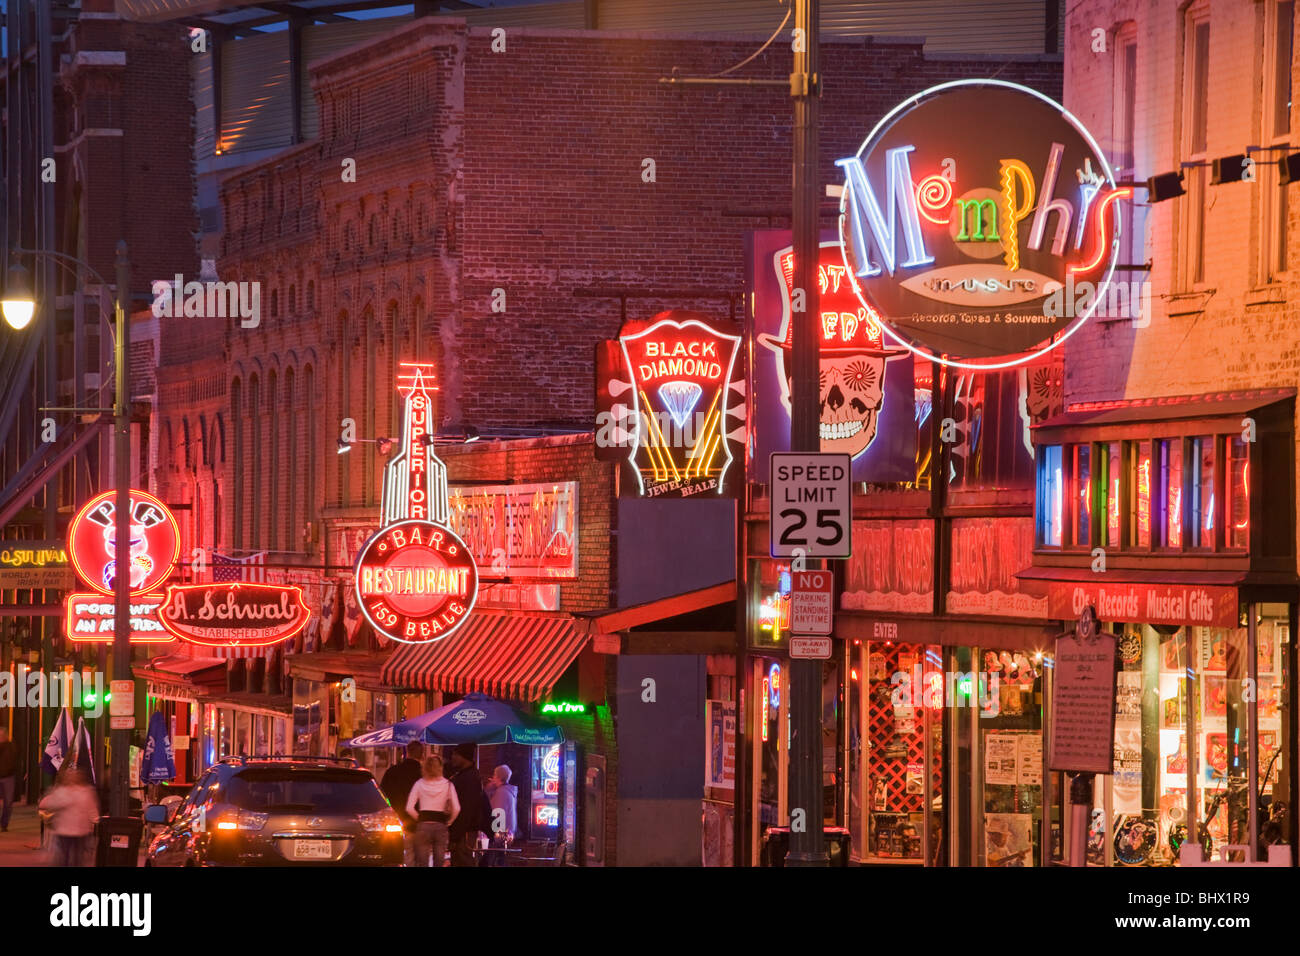 Beale Street, home of the blues, Memphis, Tennessee - Stock Image